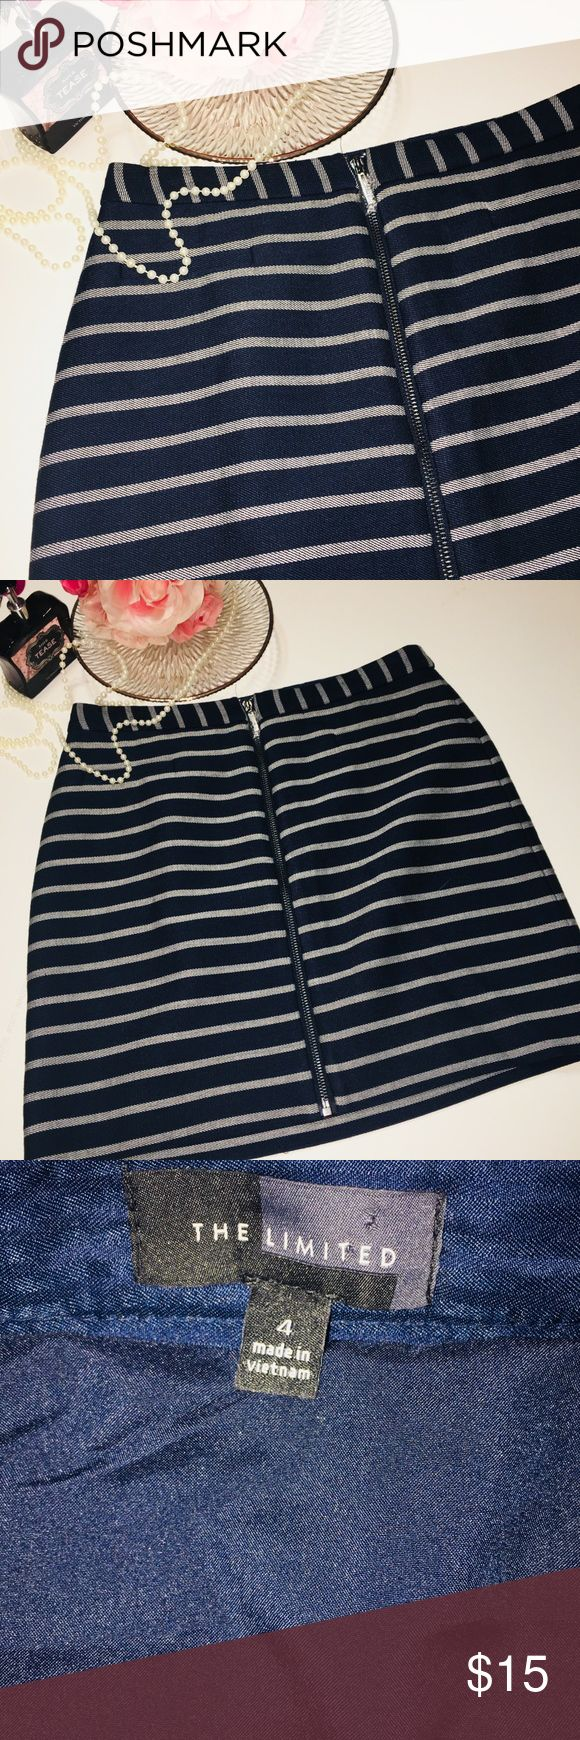 Navy Striped Skirt, The Limited Navy and cream Striped, and zipper detail On front. Photos show detail Of fabric and length. Pair with a cream blouse or different color to add a pop of color. EUC. The Limited Skirts Mini